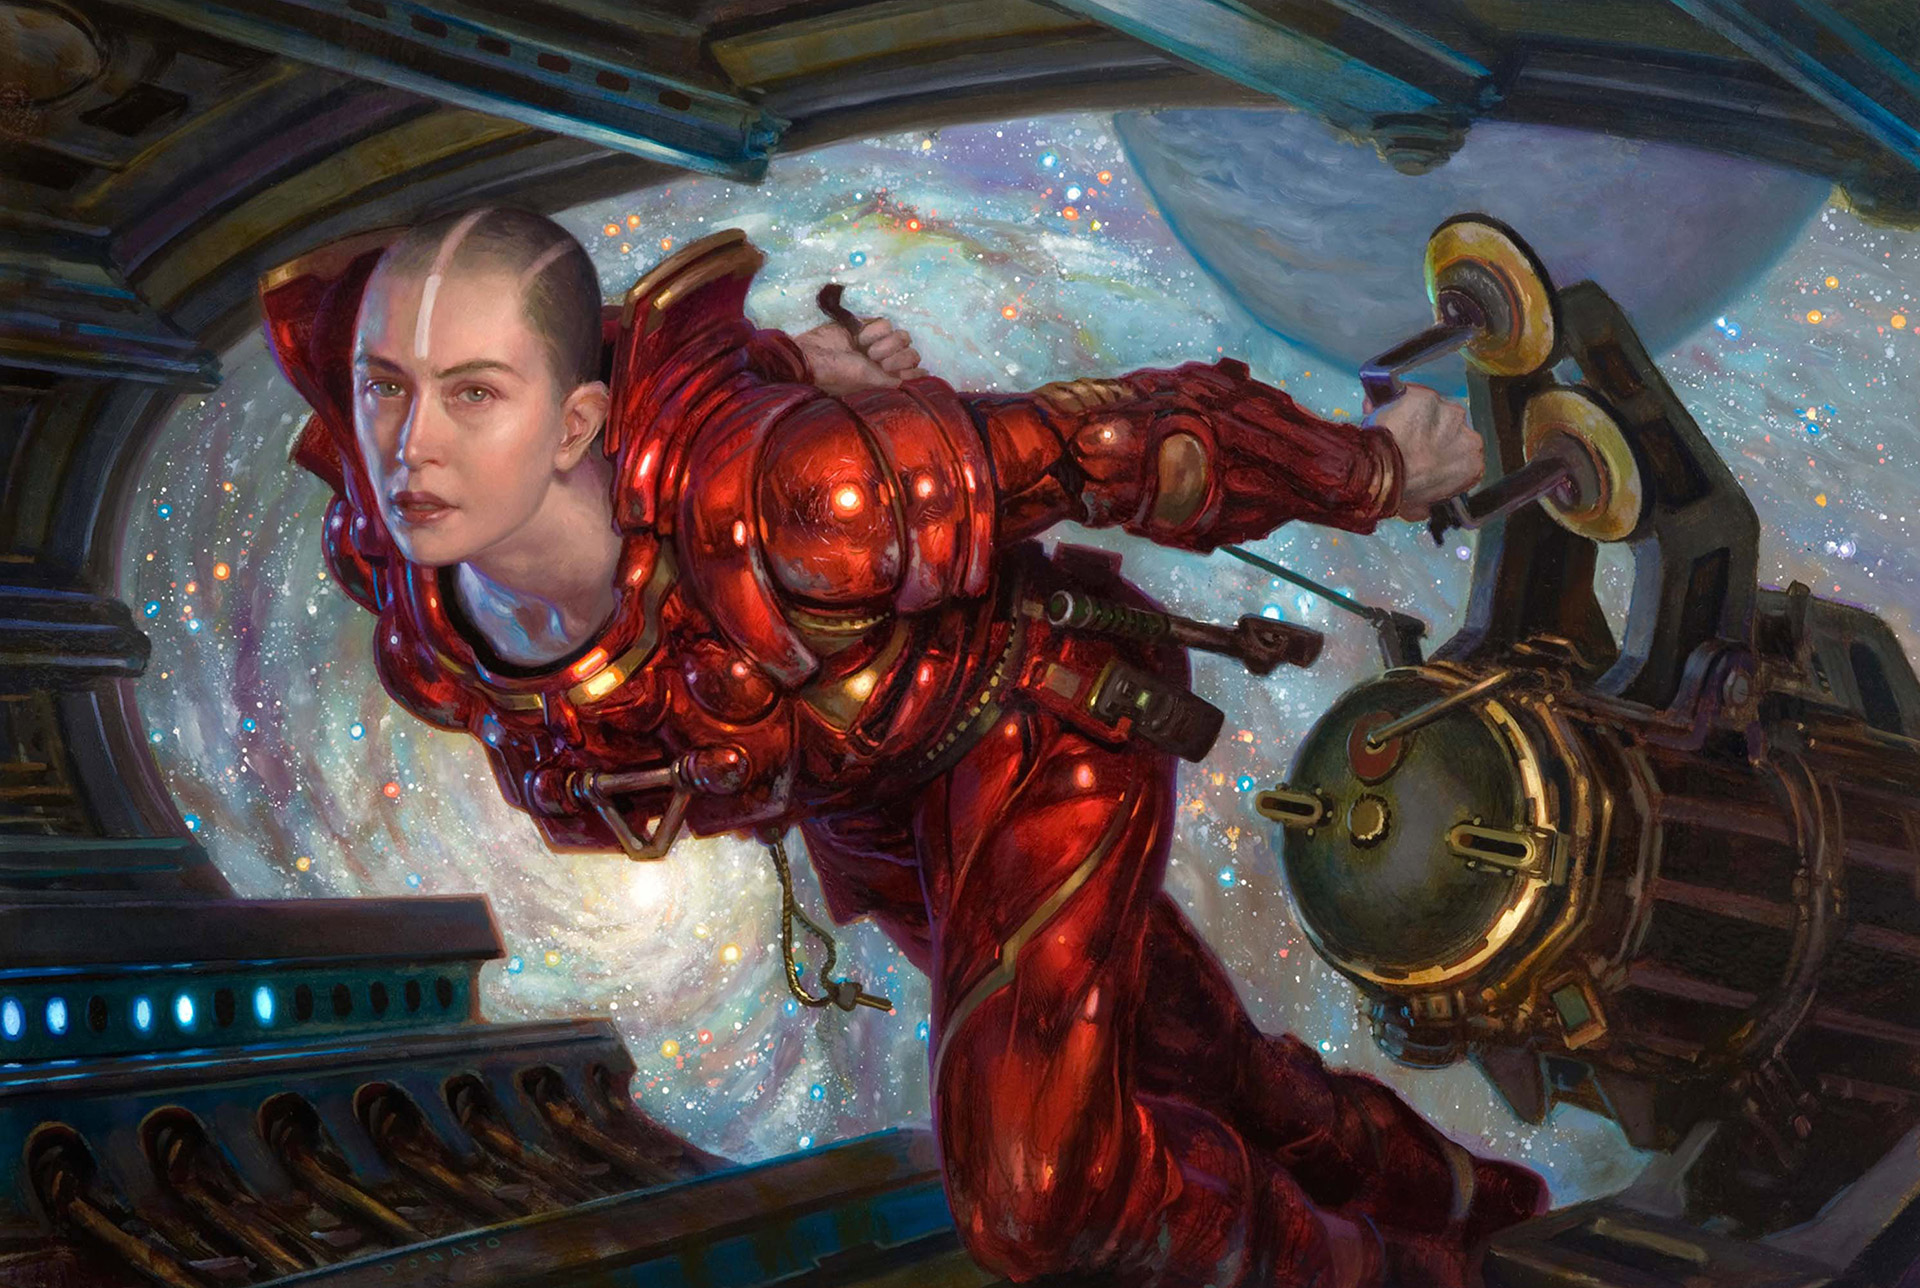 The Sci-Fi & Fantasy Paintings of Donato Giancola